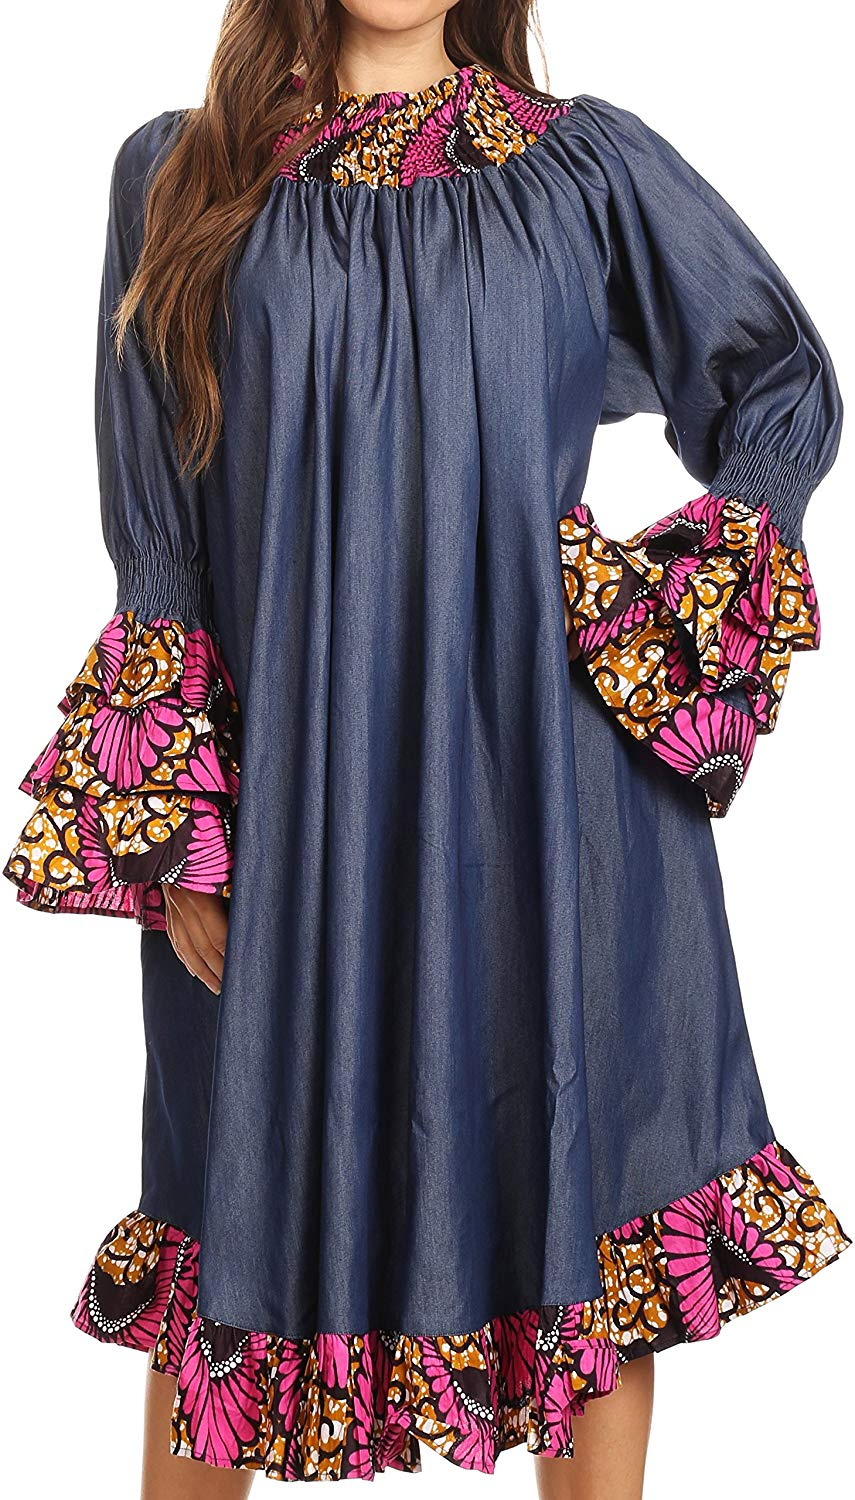 1582541488 874 Top 20 Stylish African Print Dresses Latest Styles For The Beautiful Ladies